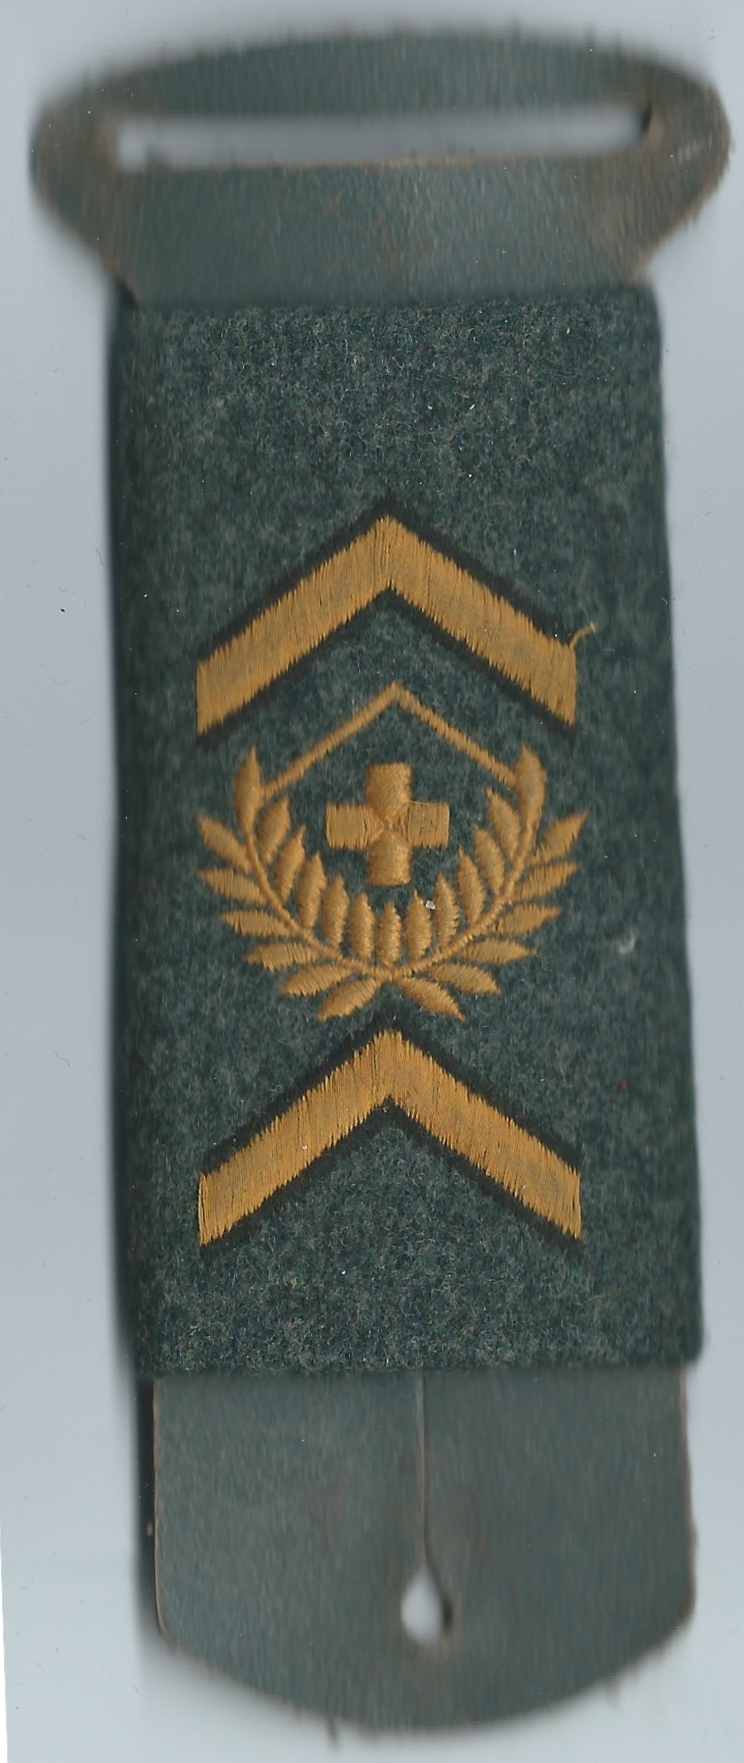 Ranks, badges, patches, epaulets of the Swiss Armed Forces - Page 14 Fourie13